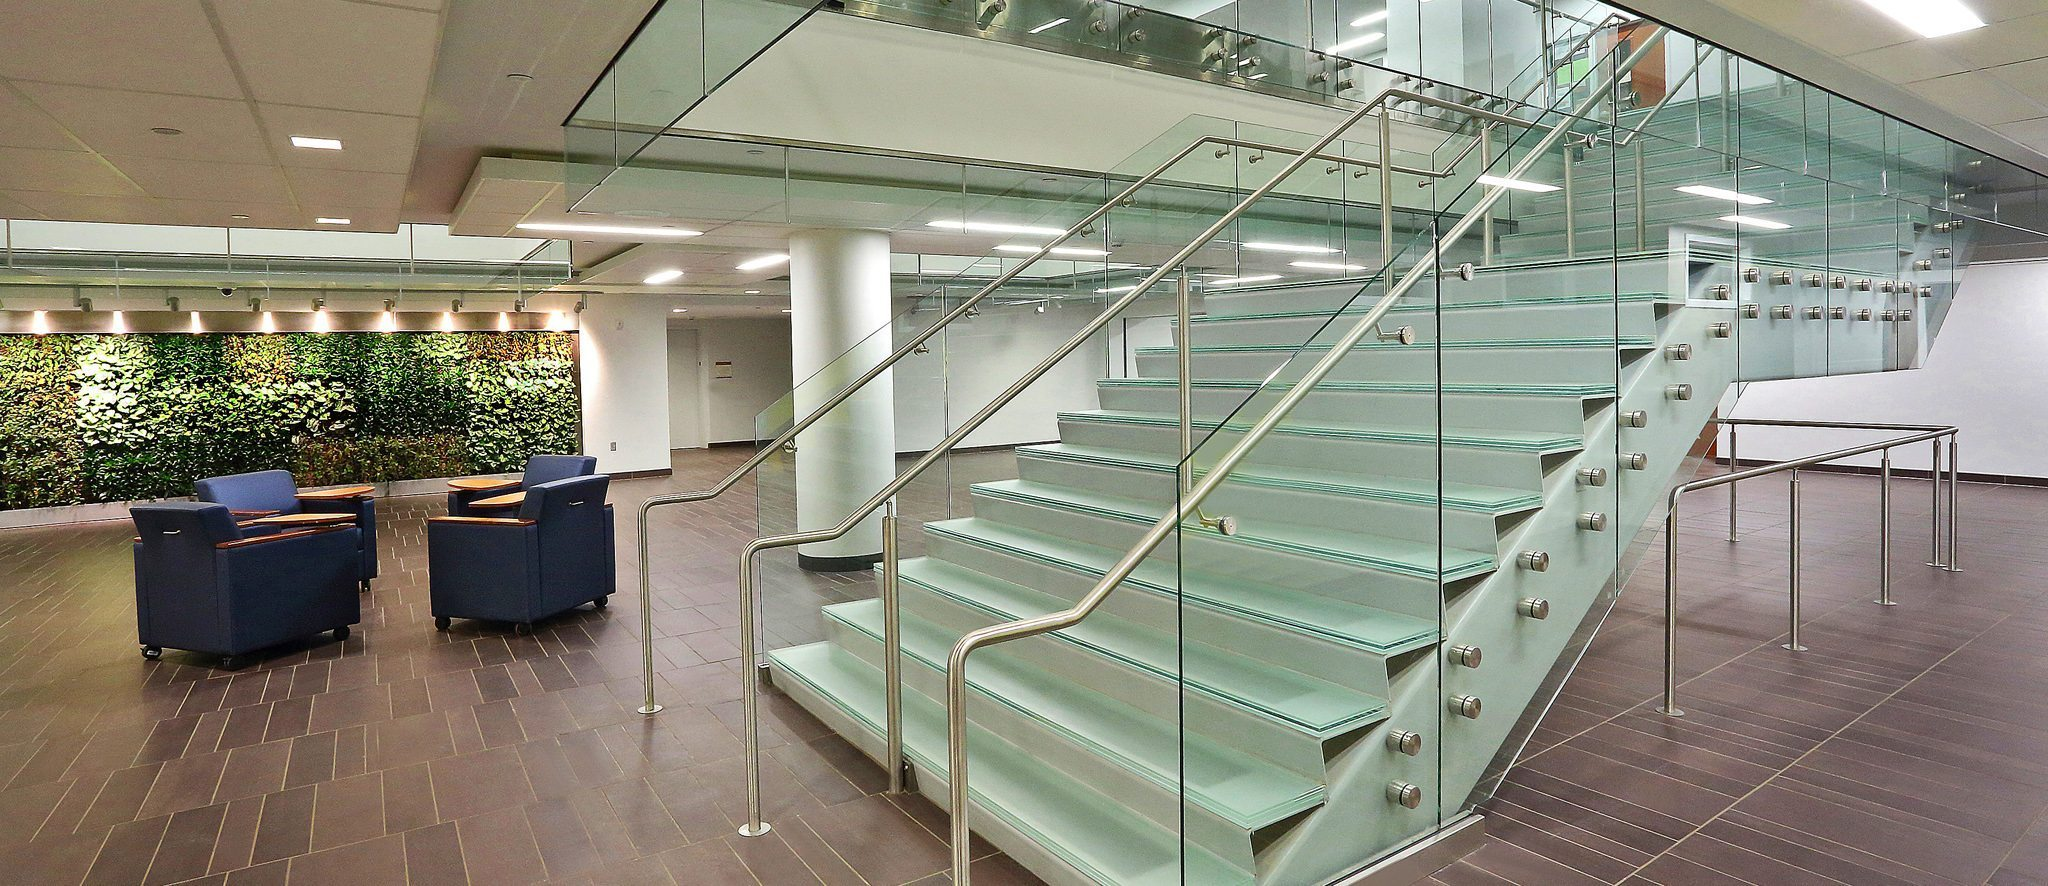 decorative glass stair treads by Nathan Allan Glass Studios